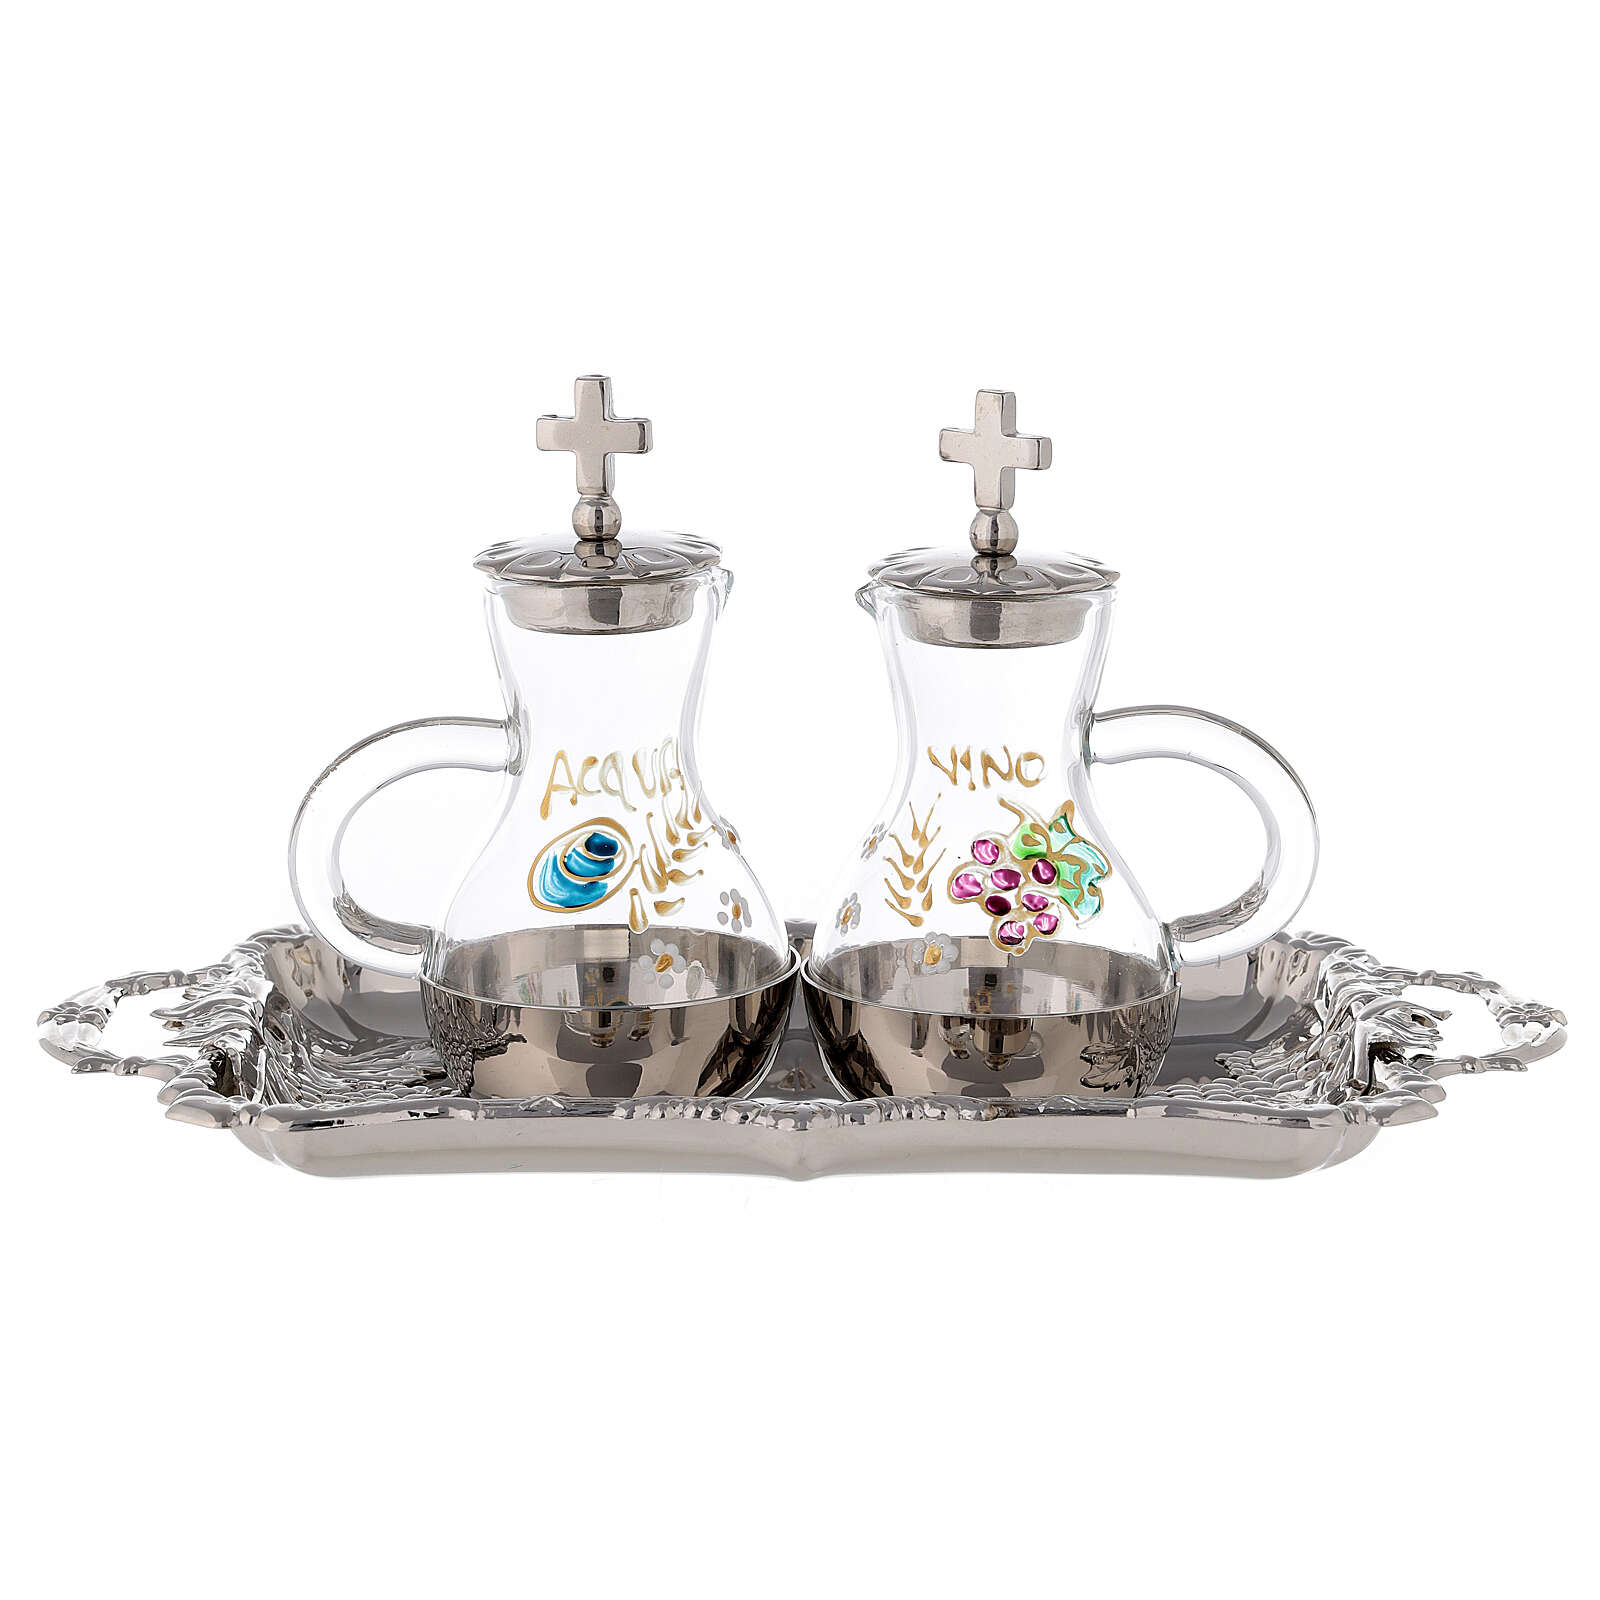 Pair of pitchers Parma model for water and wine 75 ml 4